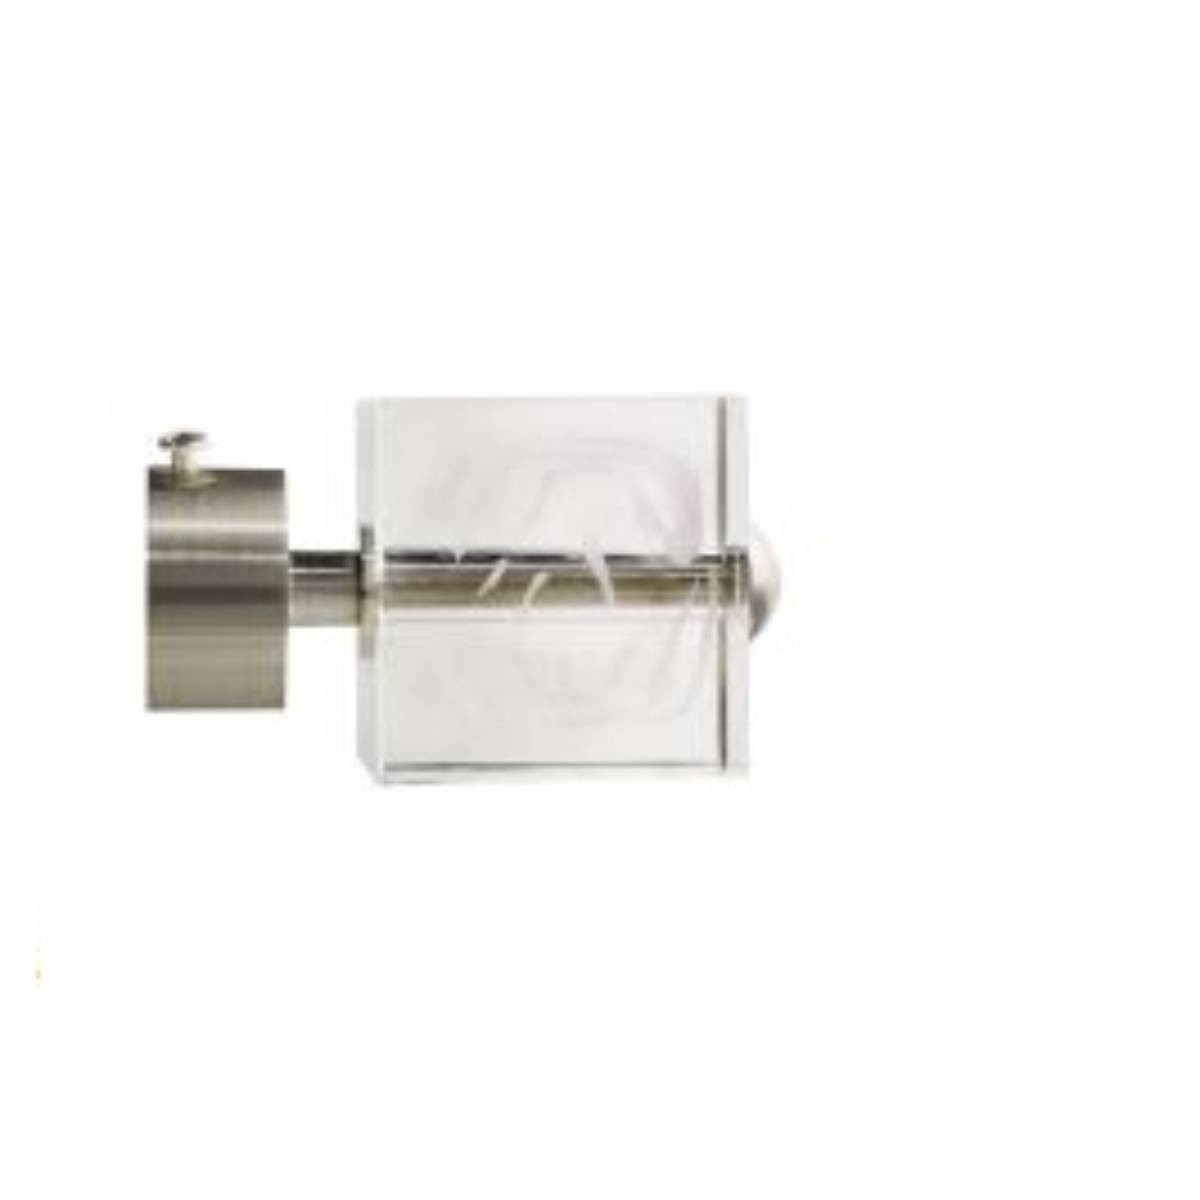 298-Embout Cube nickel mat/translucide